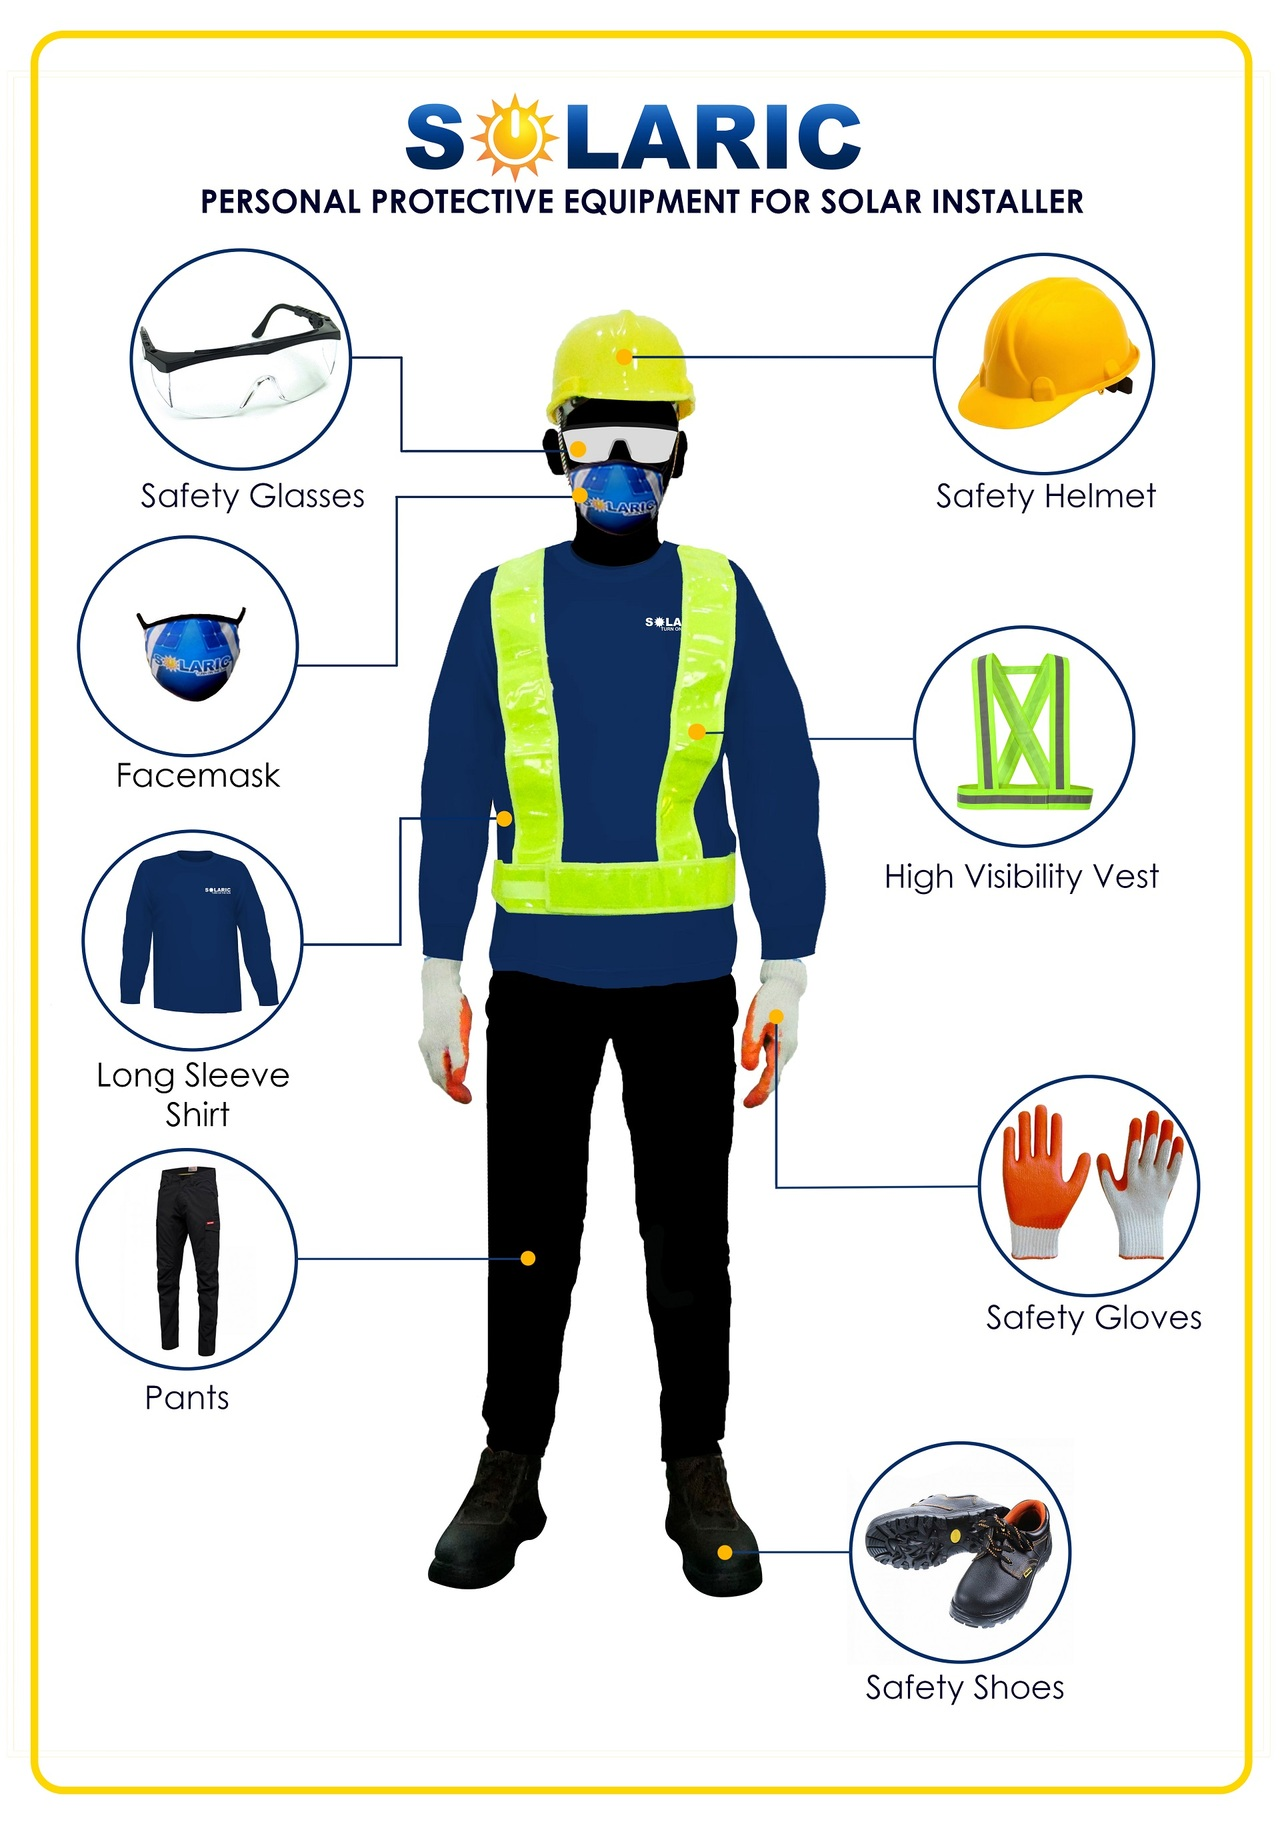 Safety protocols at Solaric